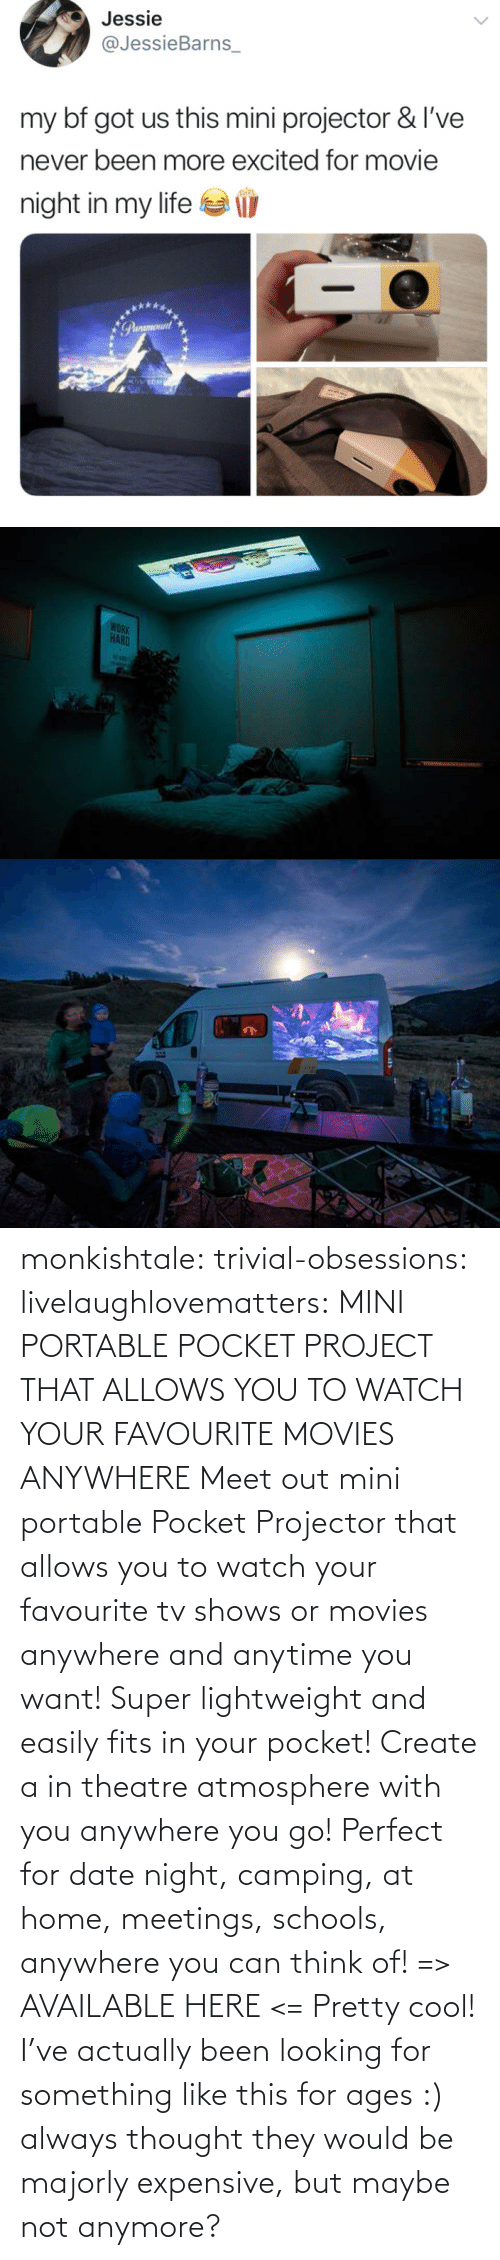 perfect: monkishtale: trivial-obsessions:   livelaughlovematters:   MINI PORTABLE POCKET PROJECT THAT ALLOWS YOU TO WATCH YOUR FAVOURITE MOVIES ANYWHERE Meet out mini portable Pocket Projector that allows you to watch your favourite tv shows or movies anywhere and anytime you want! Super lightweight and easily fits in your pocket! Create a in theatre atmosphere with you anywhere you go! Perfect for date night, camping, at home, meetings, schools, anywhere you can think of! => AVAILABLE HERE <=    Pretty cool!    I've actually been looking for something like this for ages :) always thought they would be majorly expensive, but maybe not anymore?